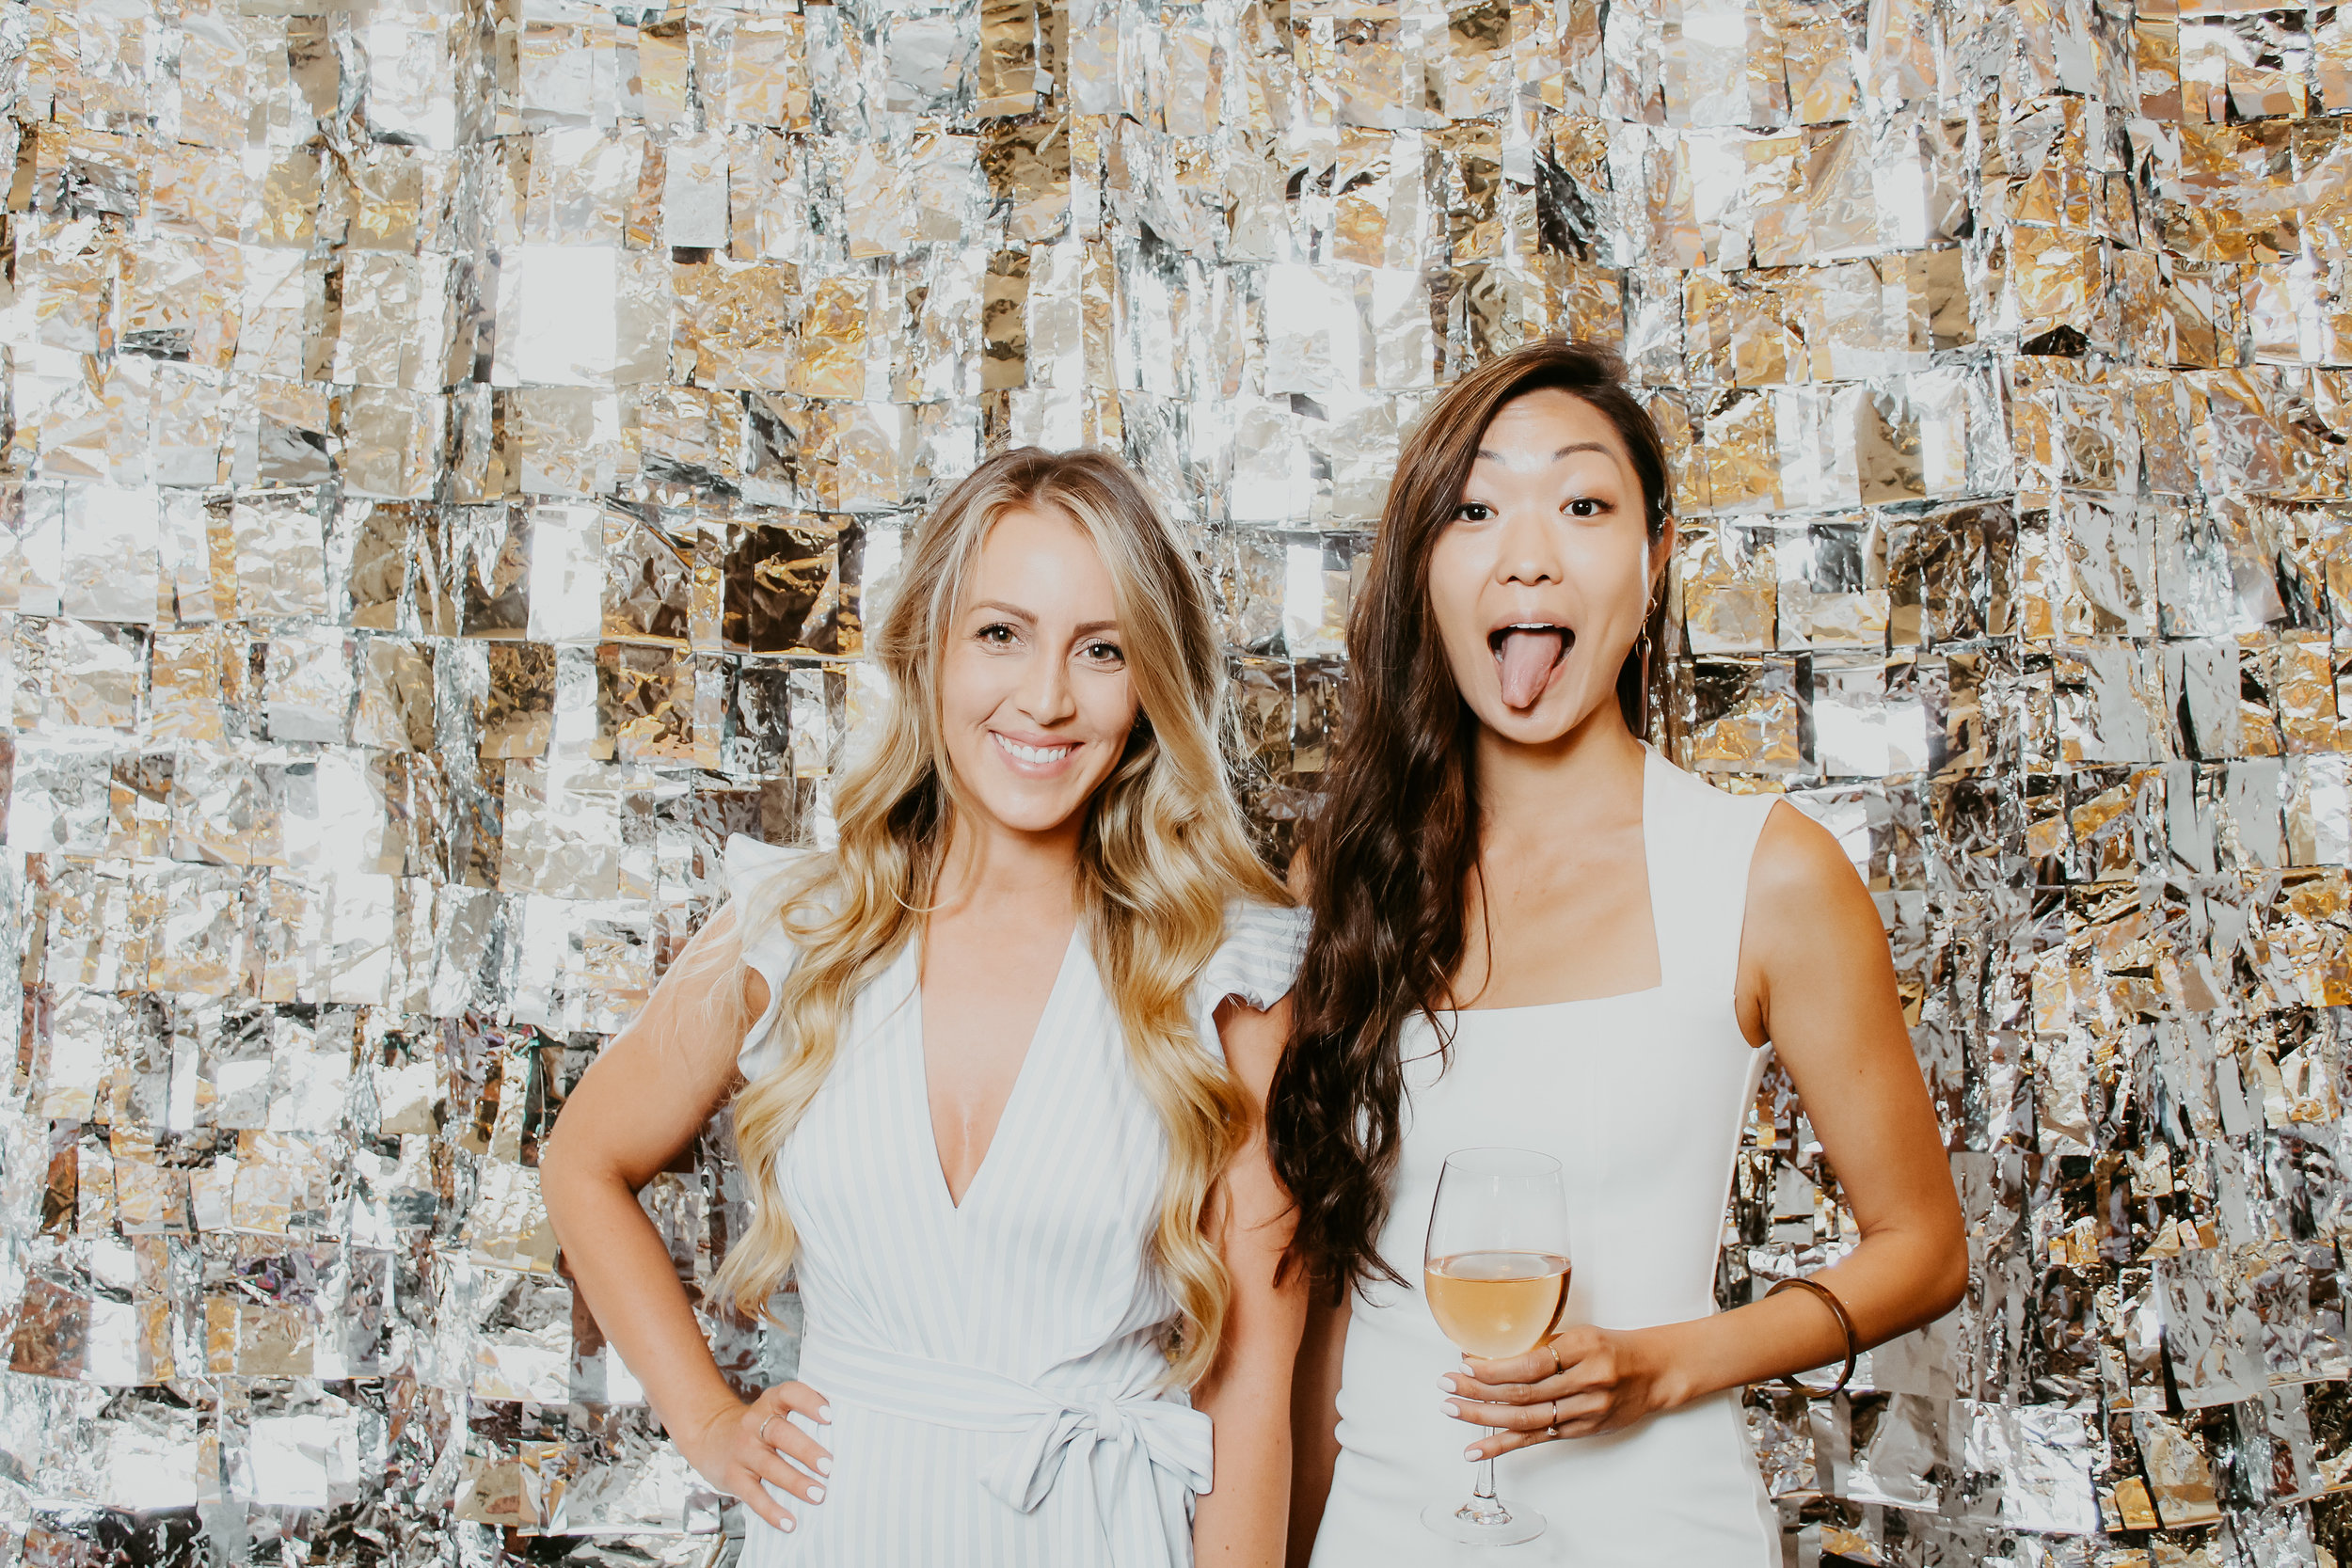 palm springs classic photo booth rental